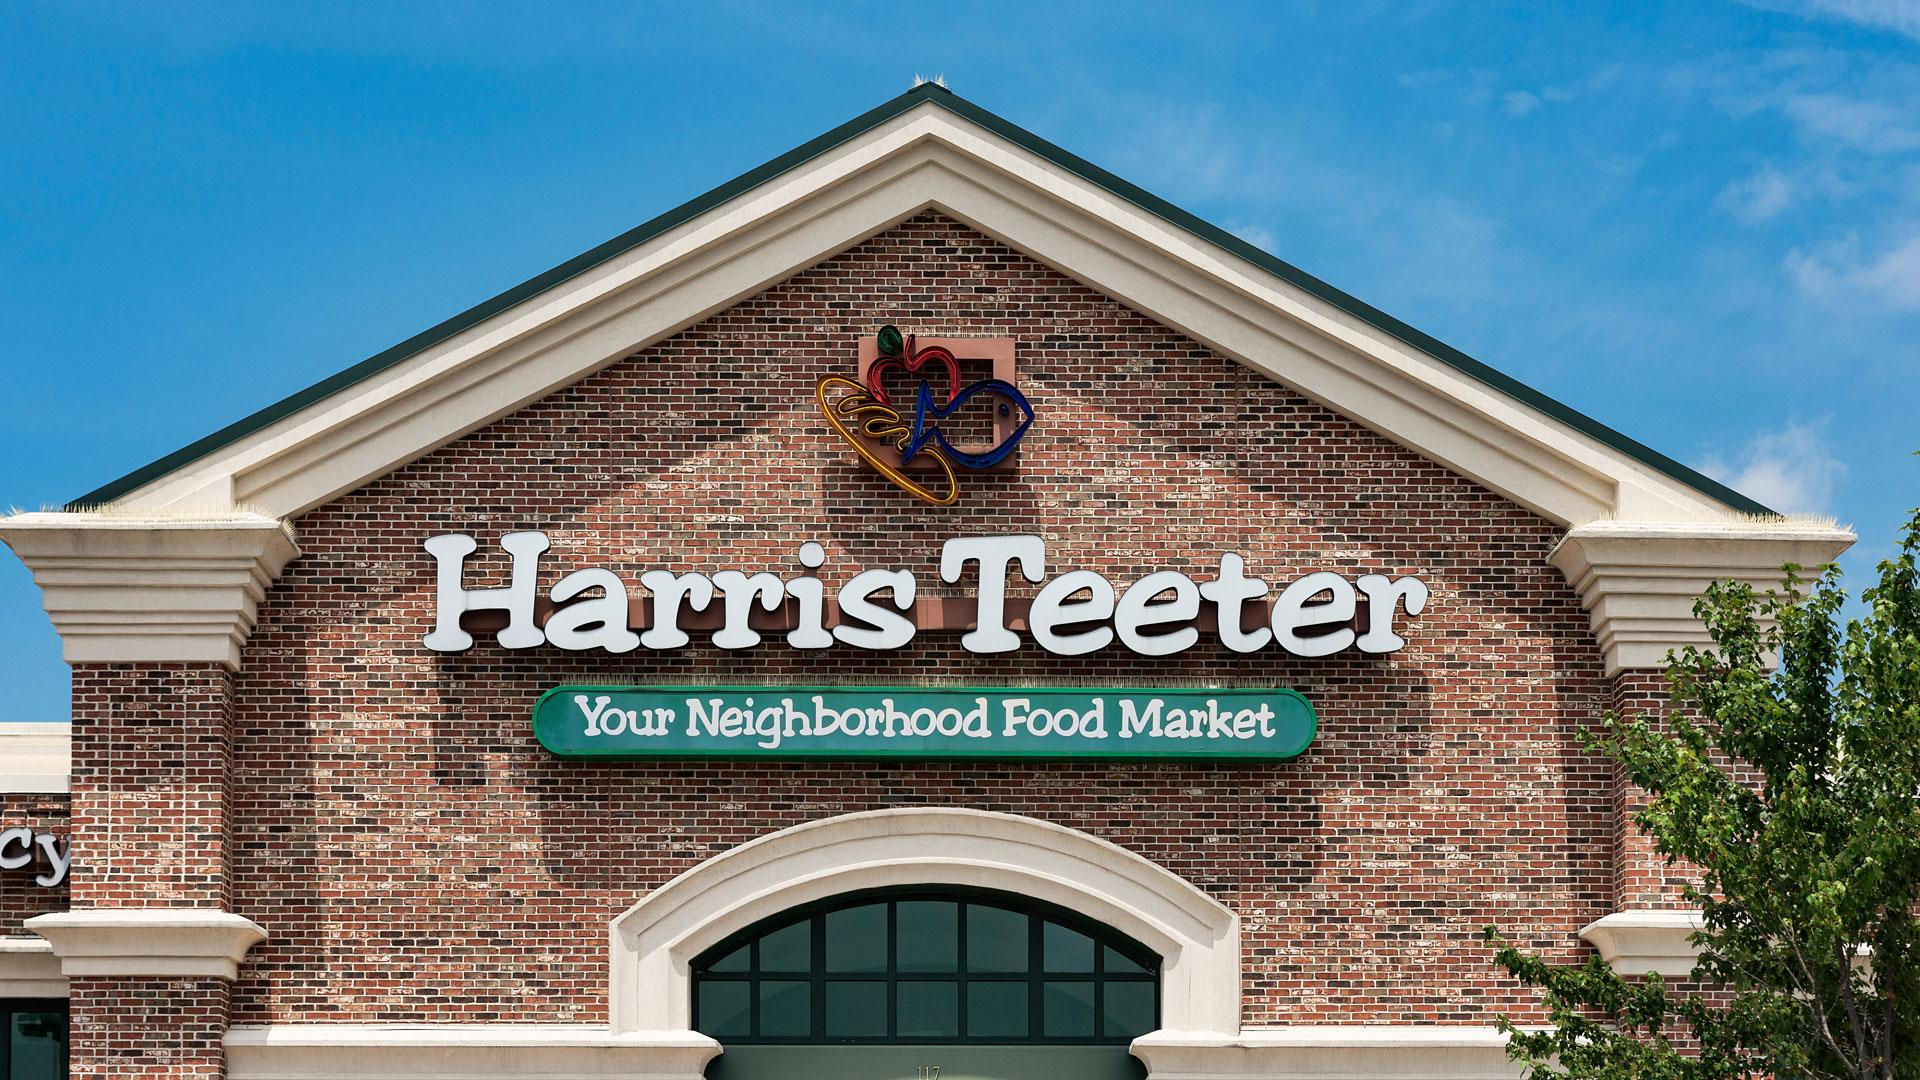 Meet The Real Harris Teeter - Southern Living